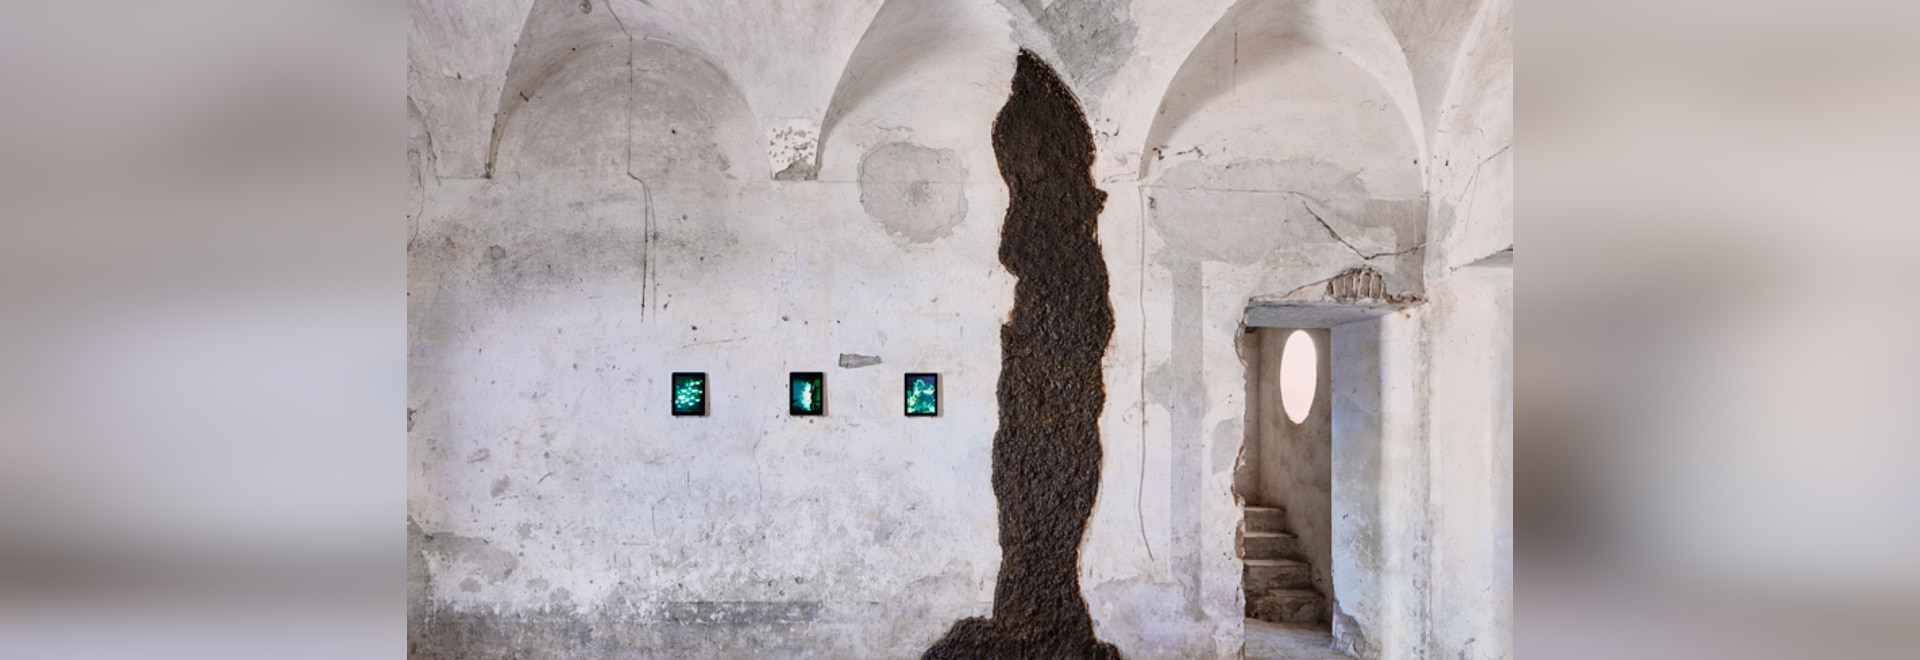 The shit museum in piacenza documents the history of feces